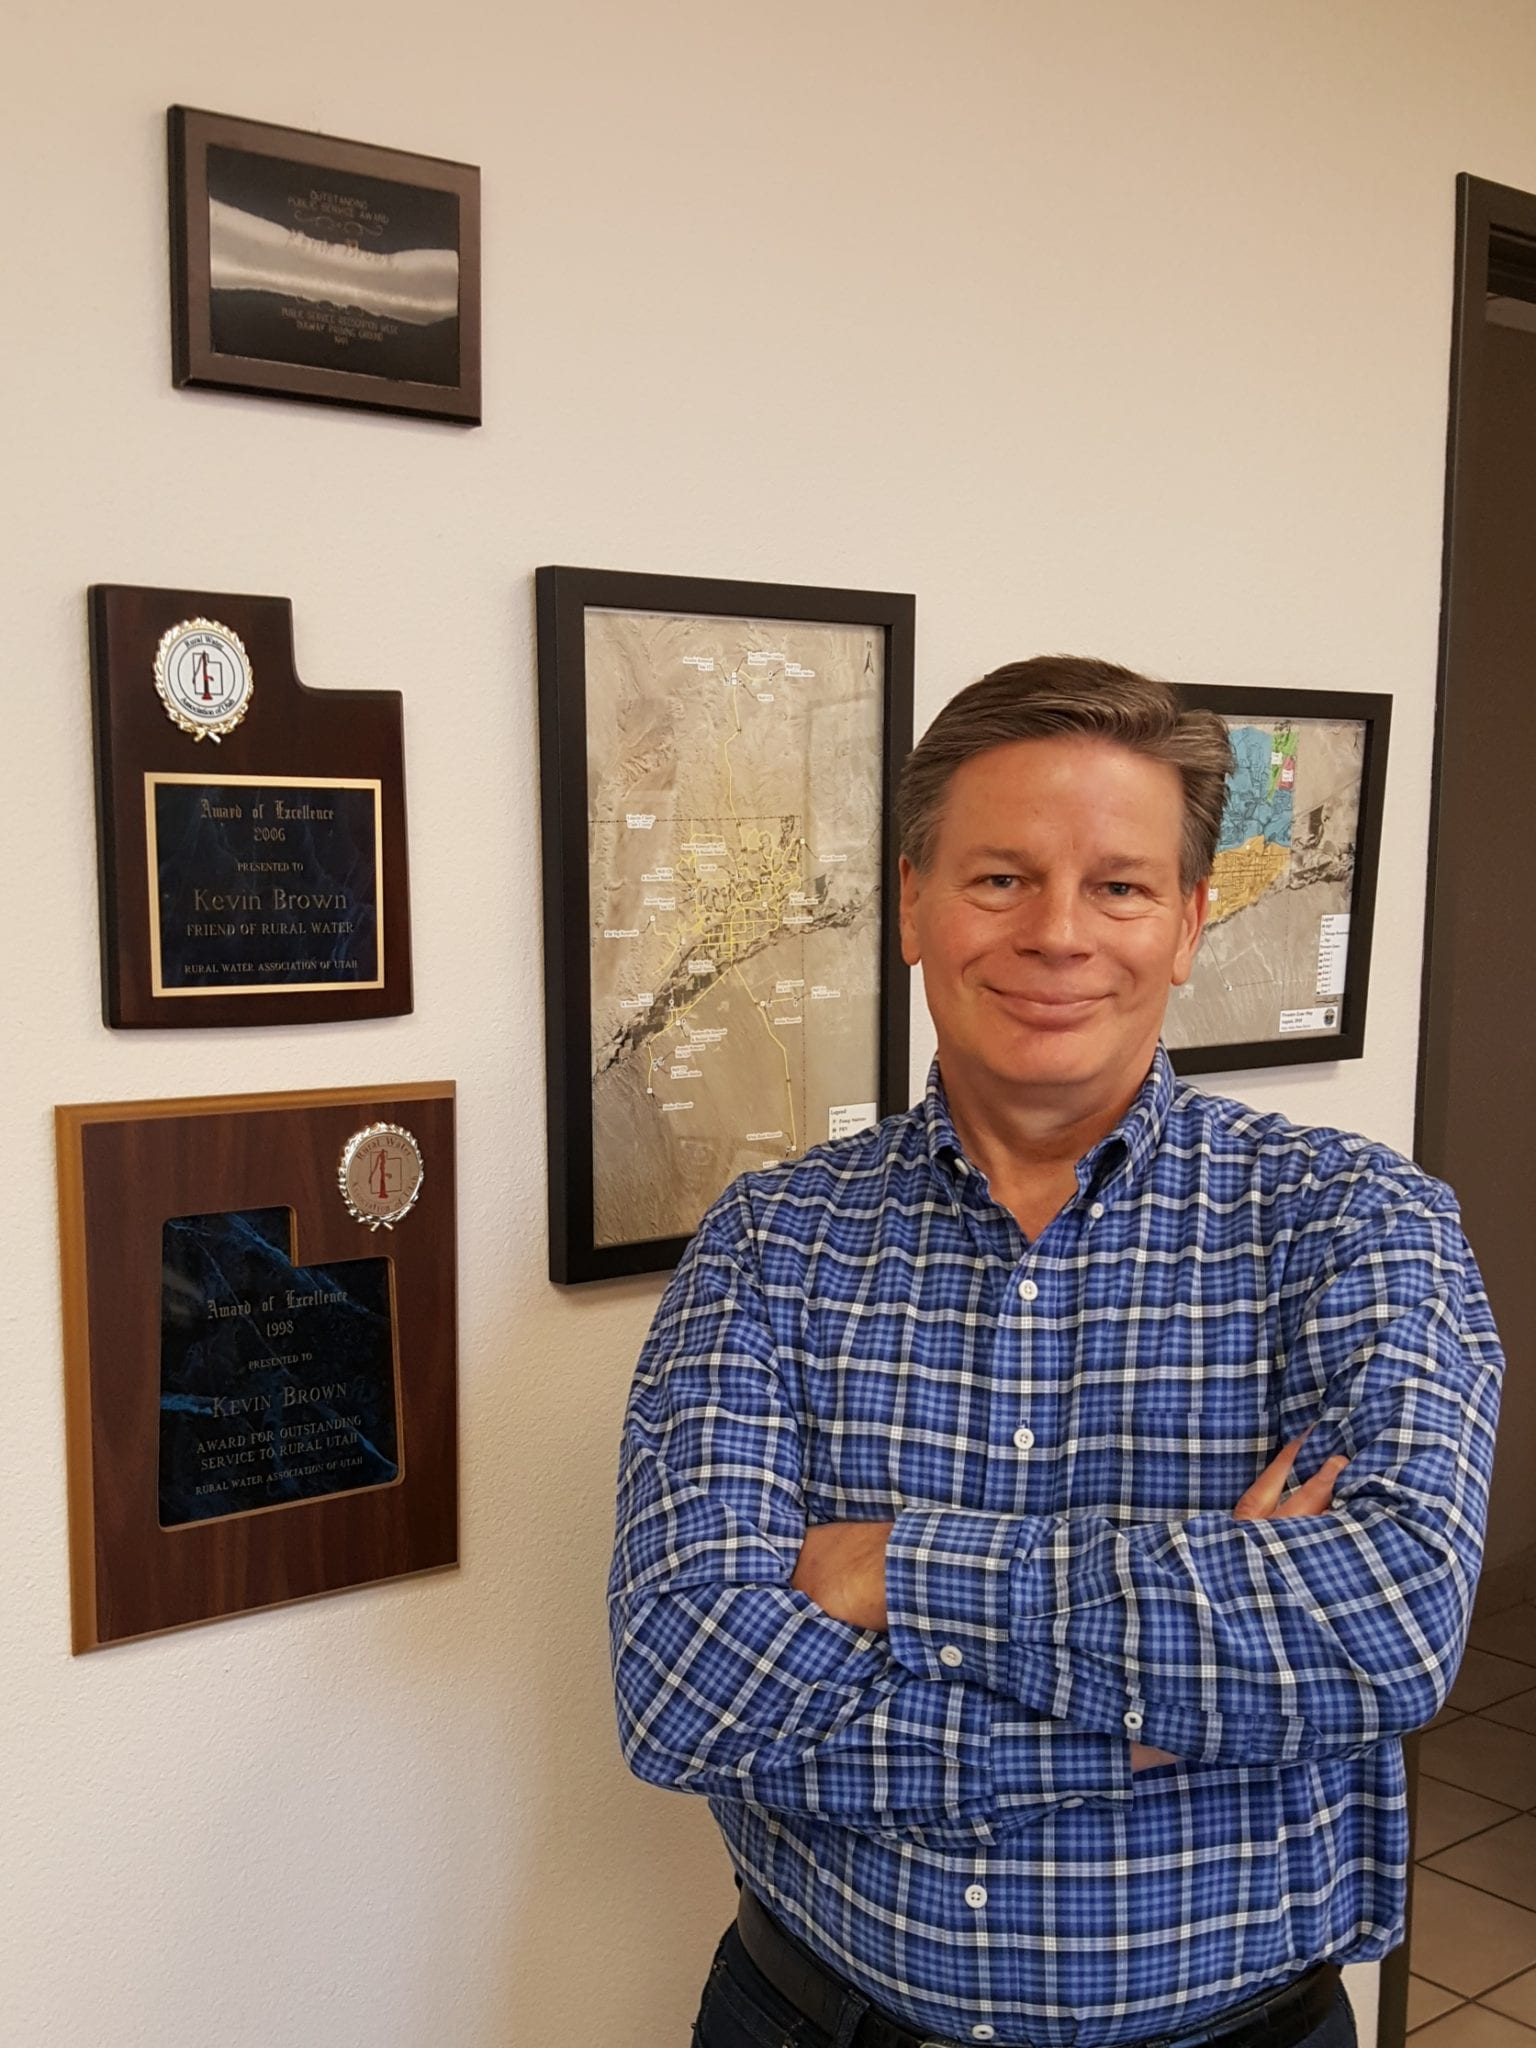 Brown earns high marks for leadership of Virgin Valley Water District